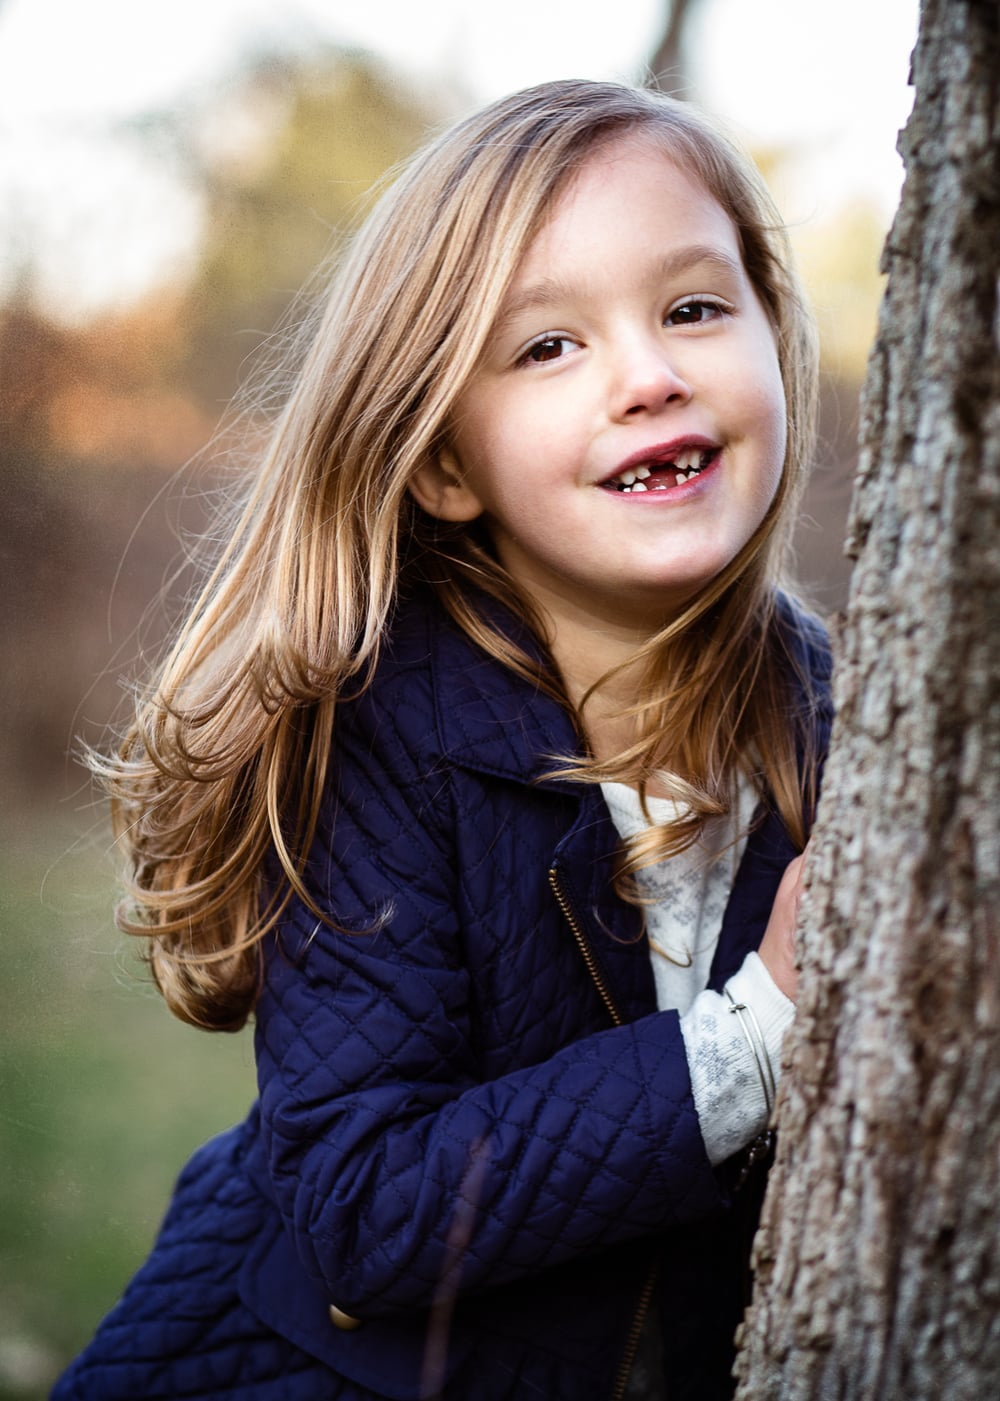 Sweet brunette girl smiling at camera next to a tree.